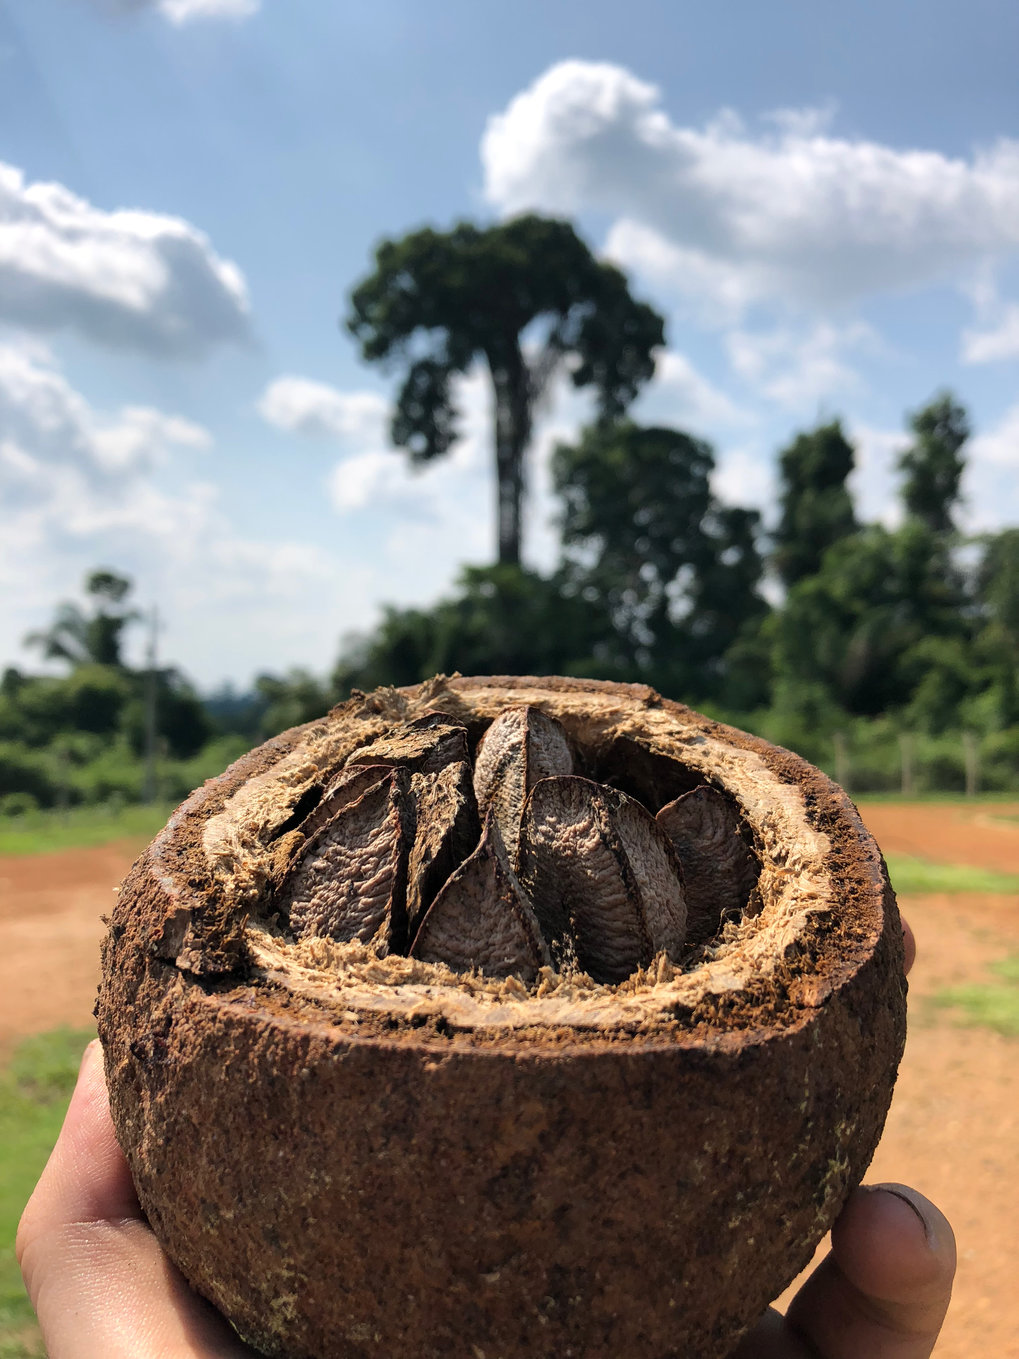 Brazil nut fruit and tree in the background.